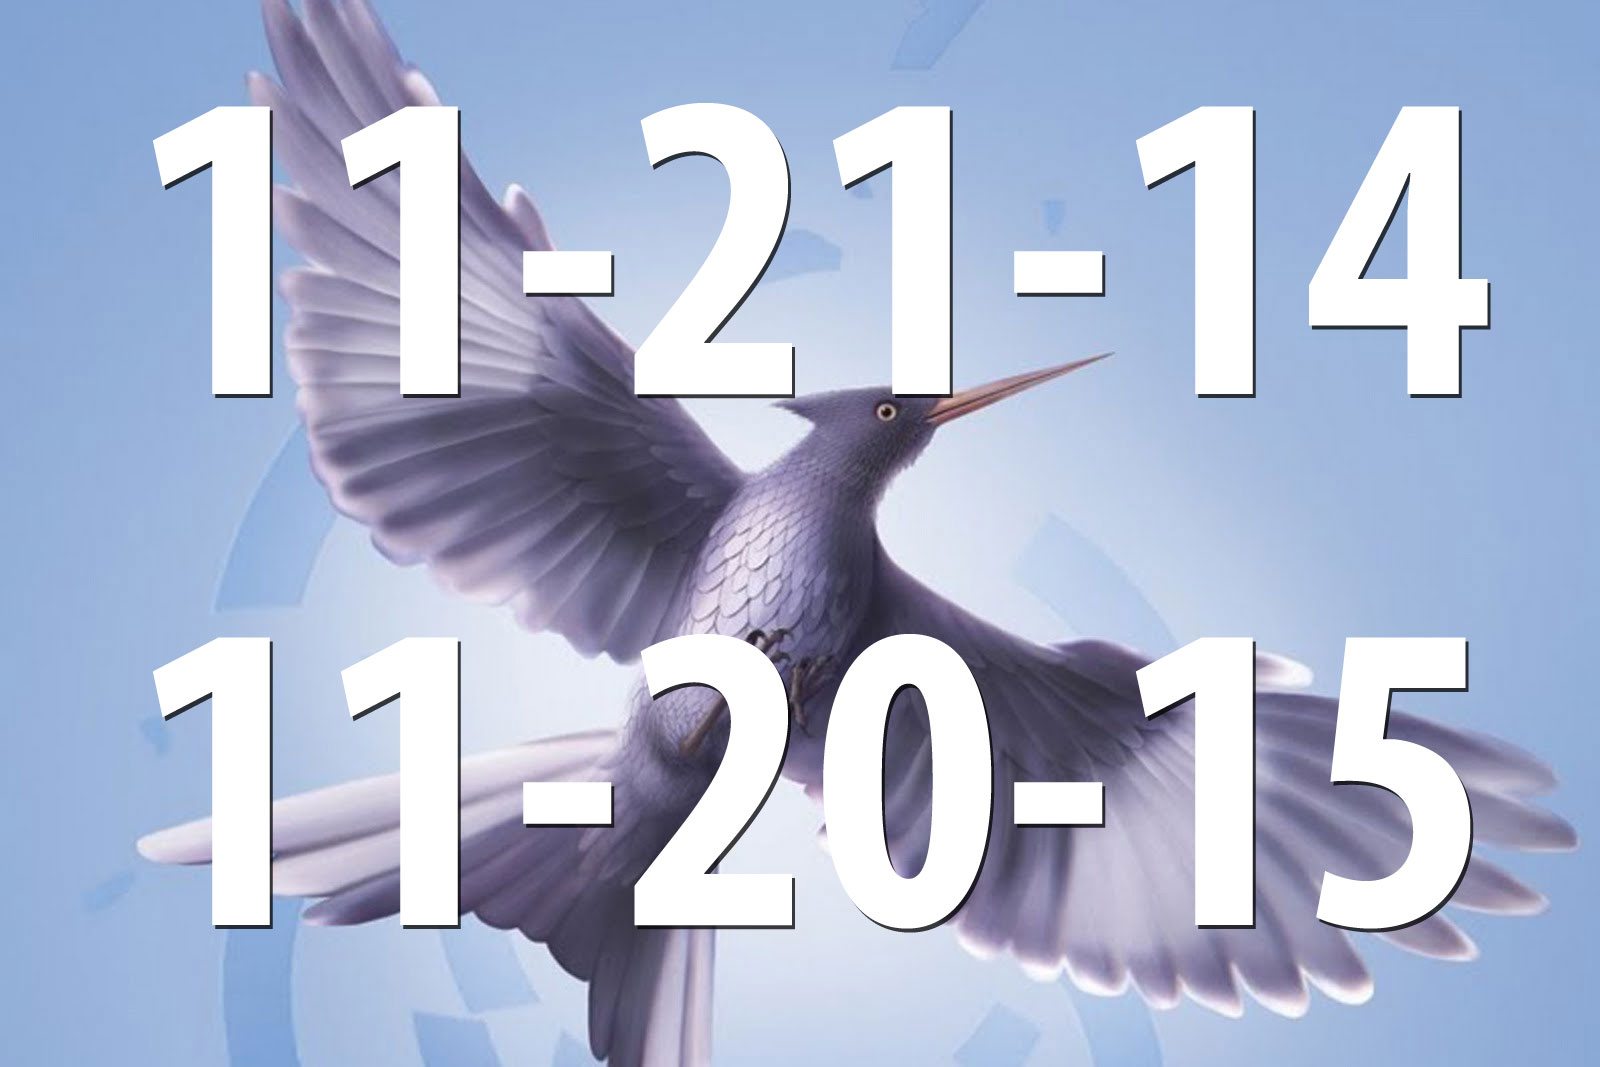 ... Games: Mockingjay Part 1 DVD / Blue-ray release date premiere 2015